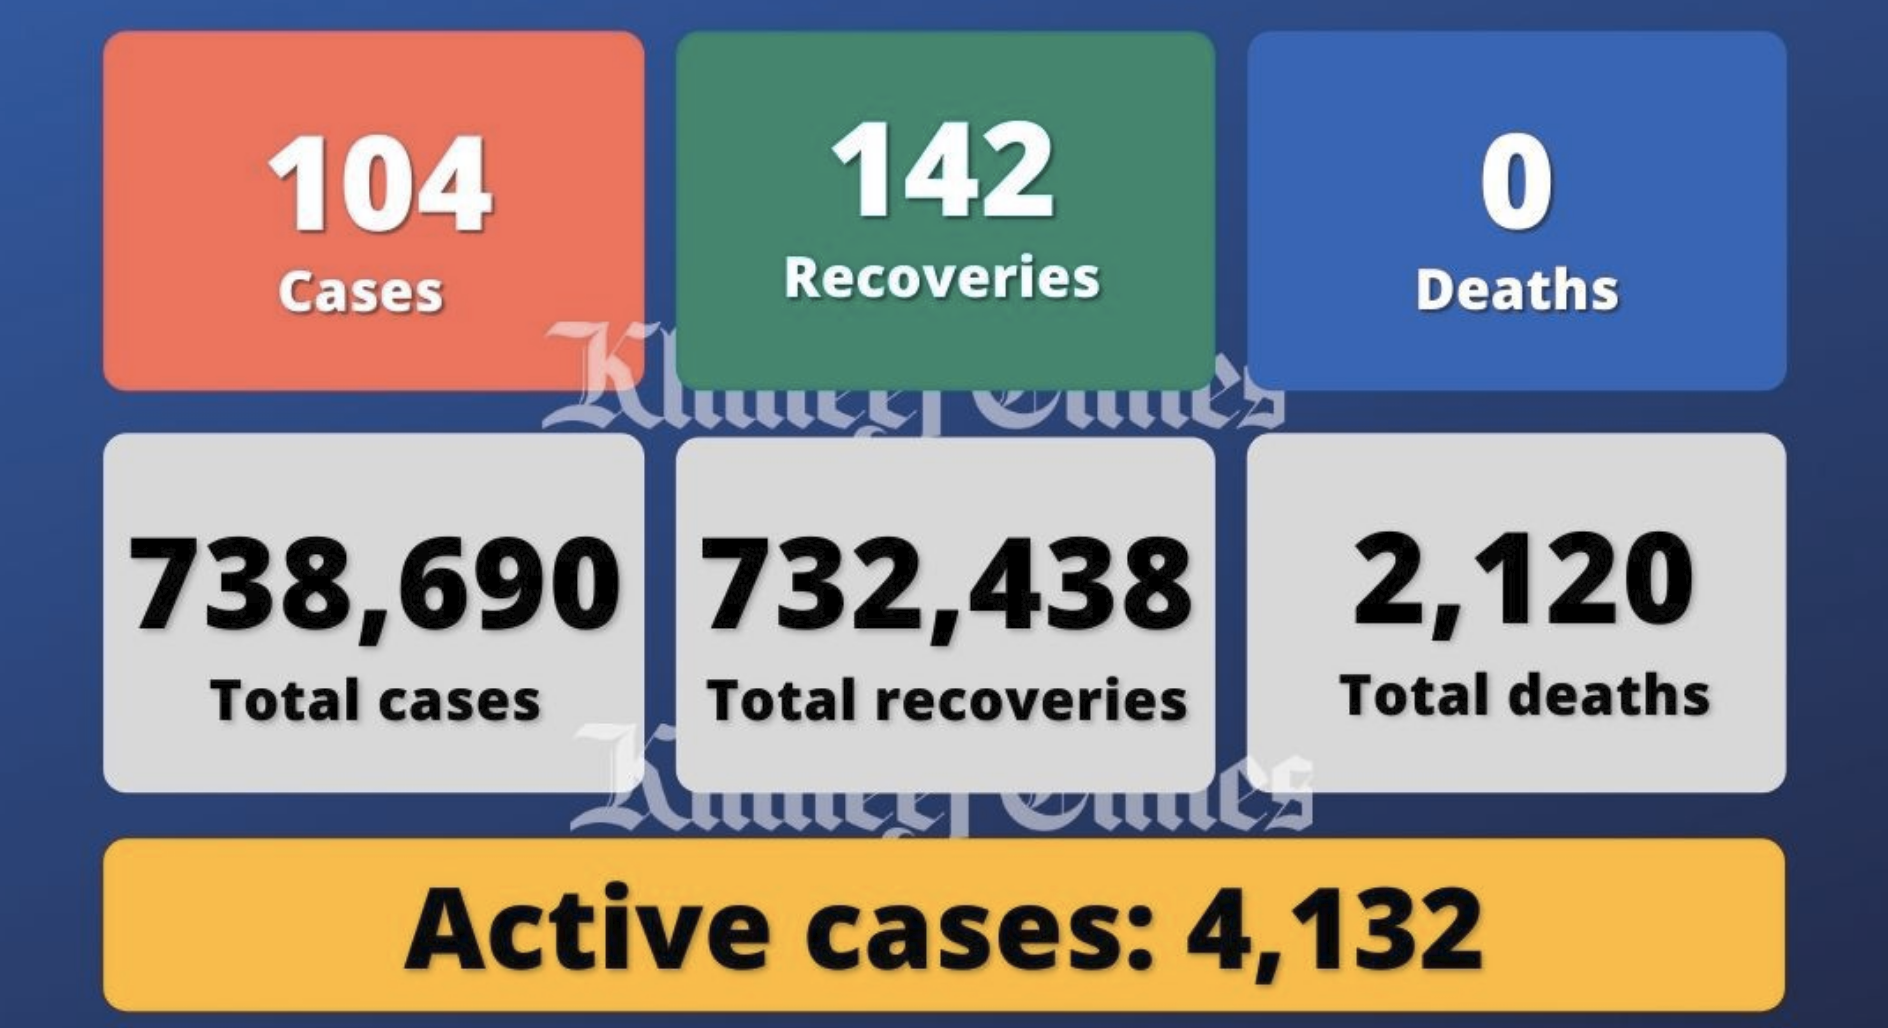 UAE reports 104 Covid-19 cases, 142 recoveries, no deaths